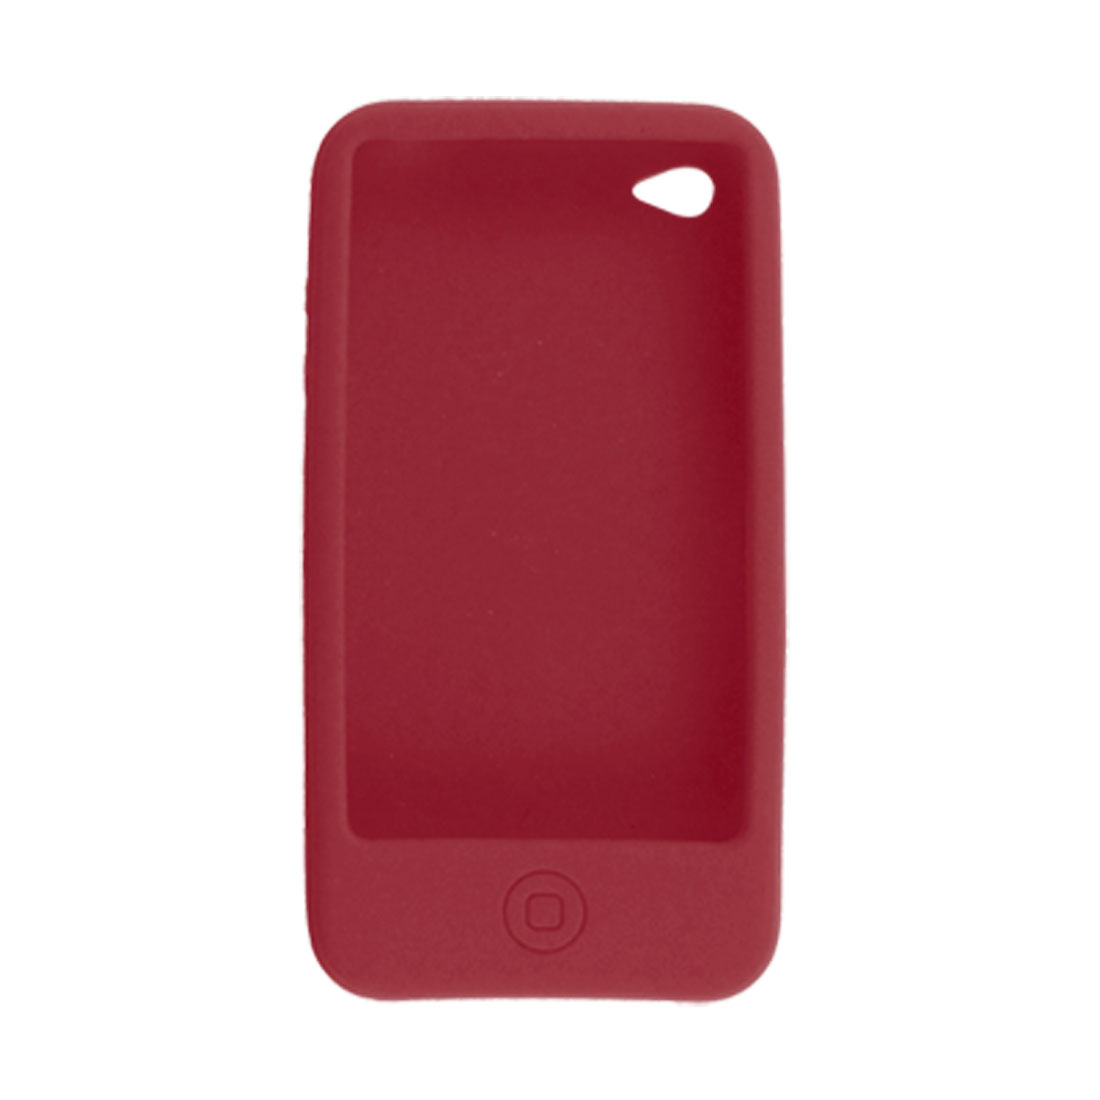 Red Silicone Skin Back Case for iPhone 4 4G